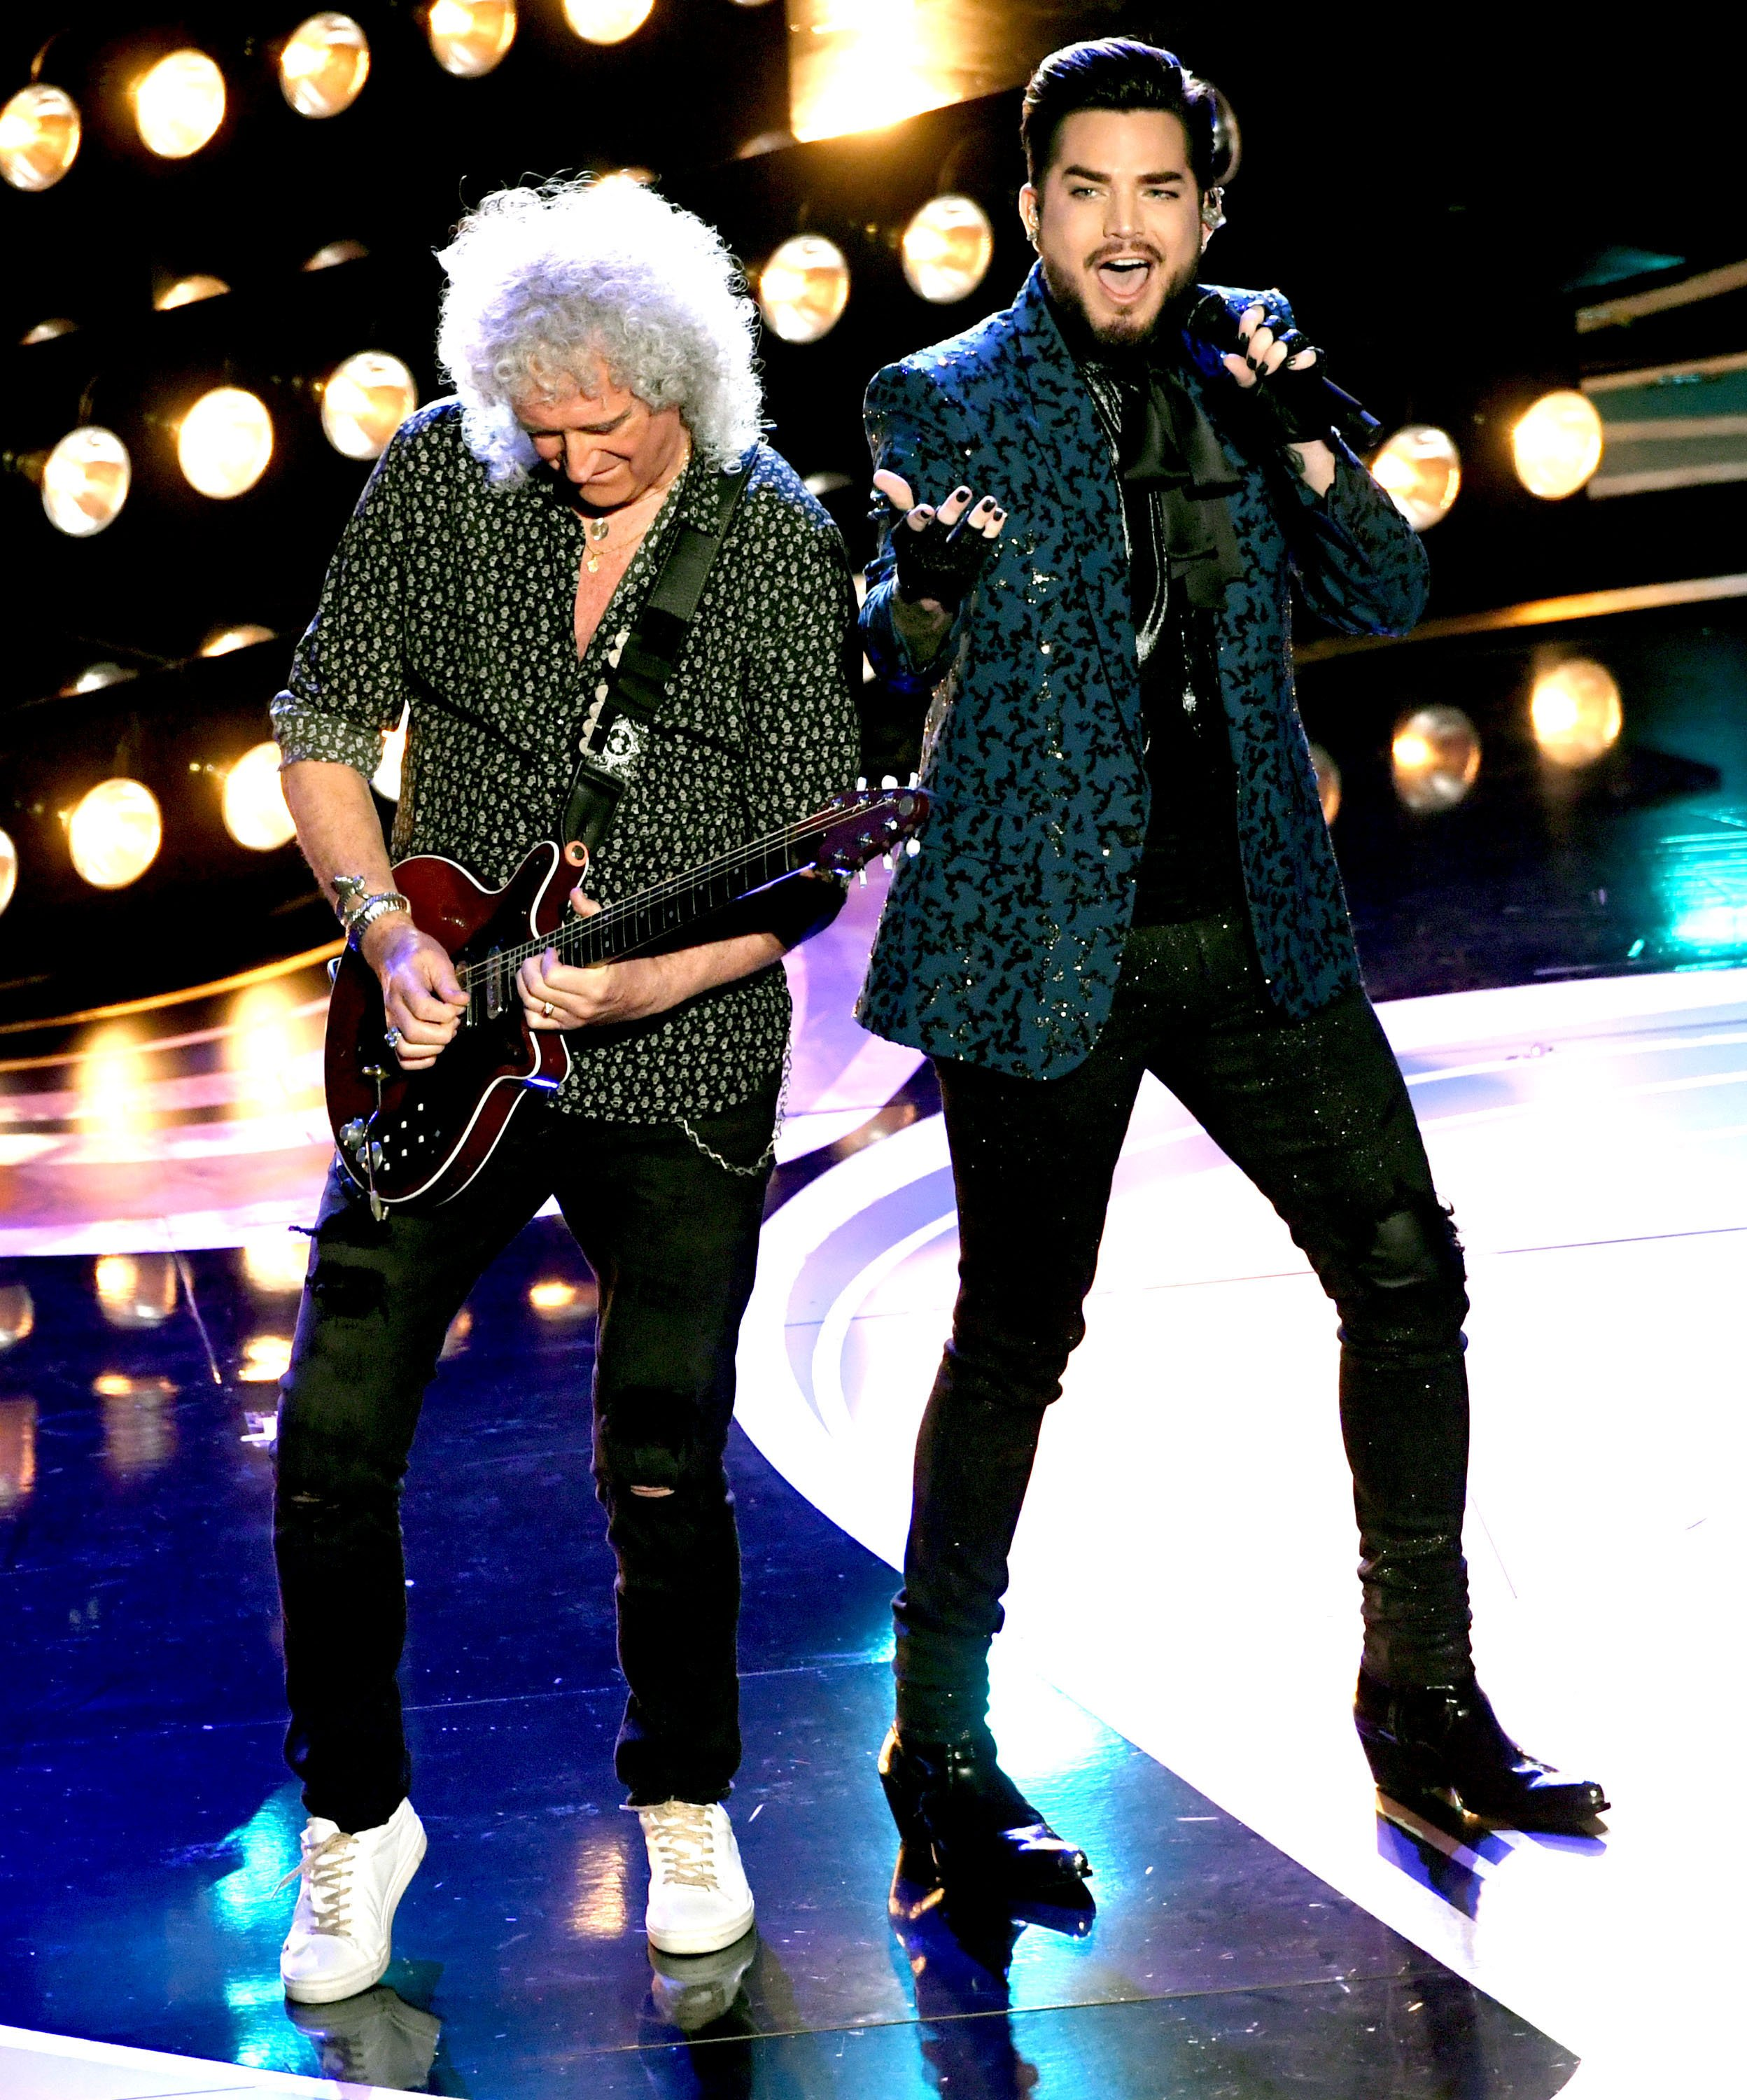 Brian May and Adam Lambert perform onstage during the 91st Annual Academy Awards on February 24, 2019, in Hollywood, California. | Source: Getty Images.